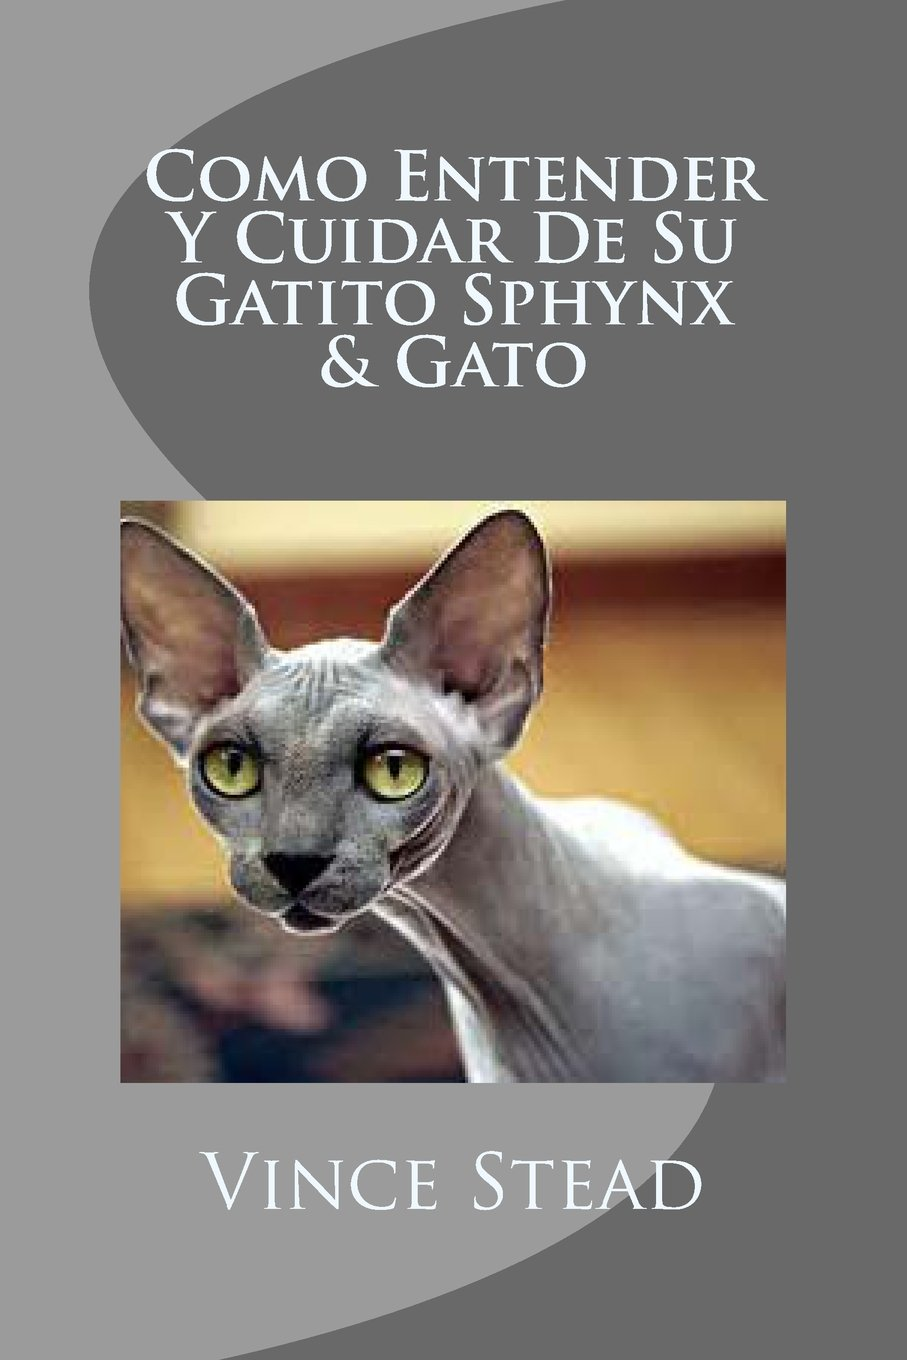 Como Entender Y Cuidar De Su Gatito Sphynx & Gato (Spanish Edition): Vince Stead: 9781497316669: Amazon.com: Books